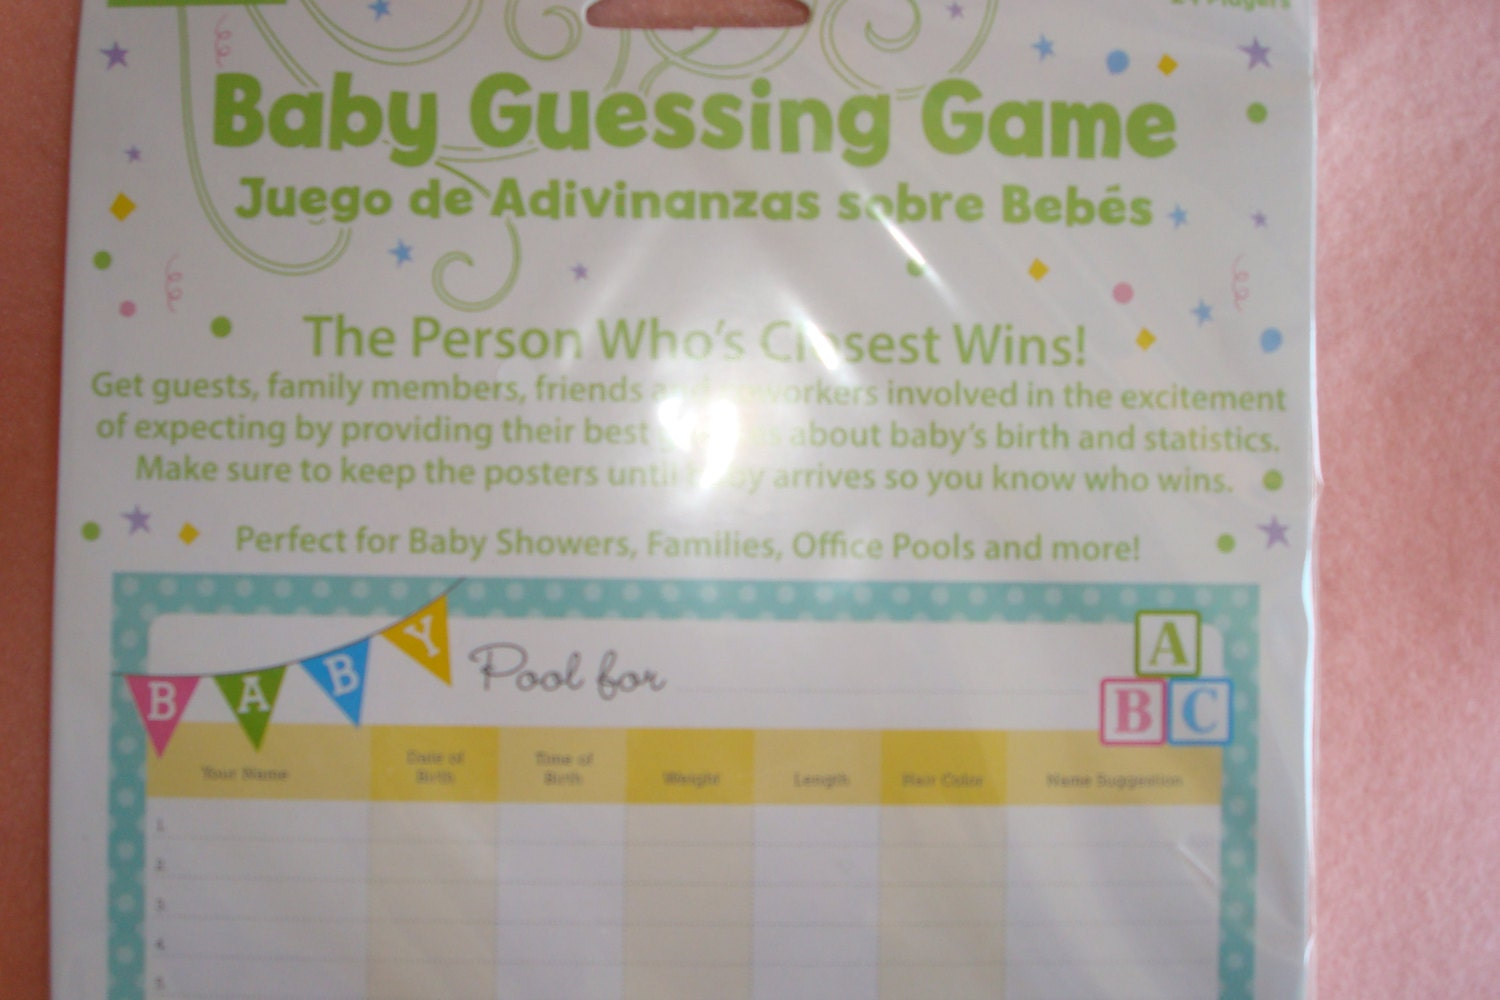 baby guessing game baby shower games baby office pool